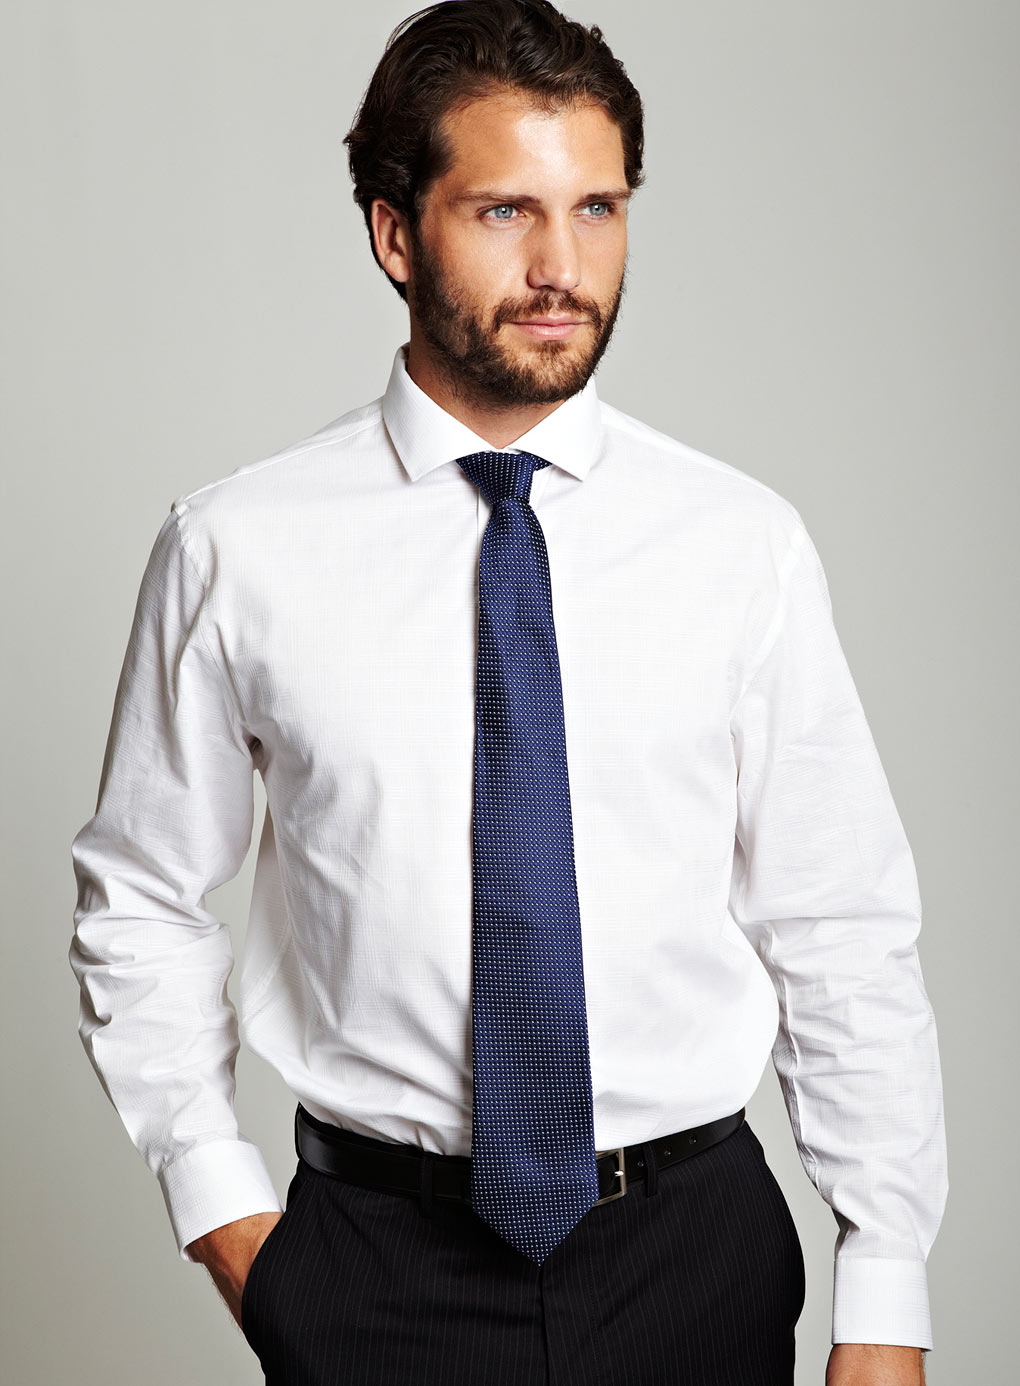 Sexy guy in a white shirt and tie